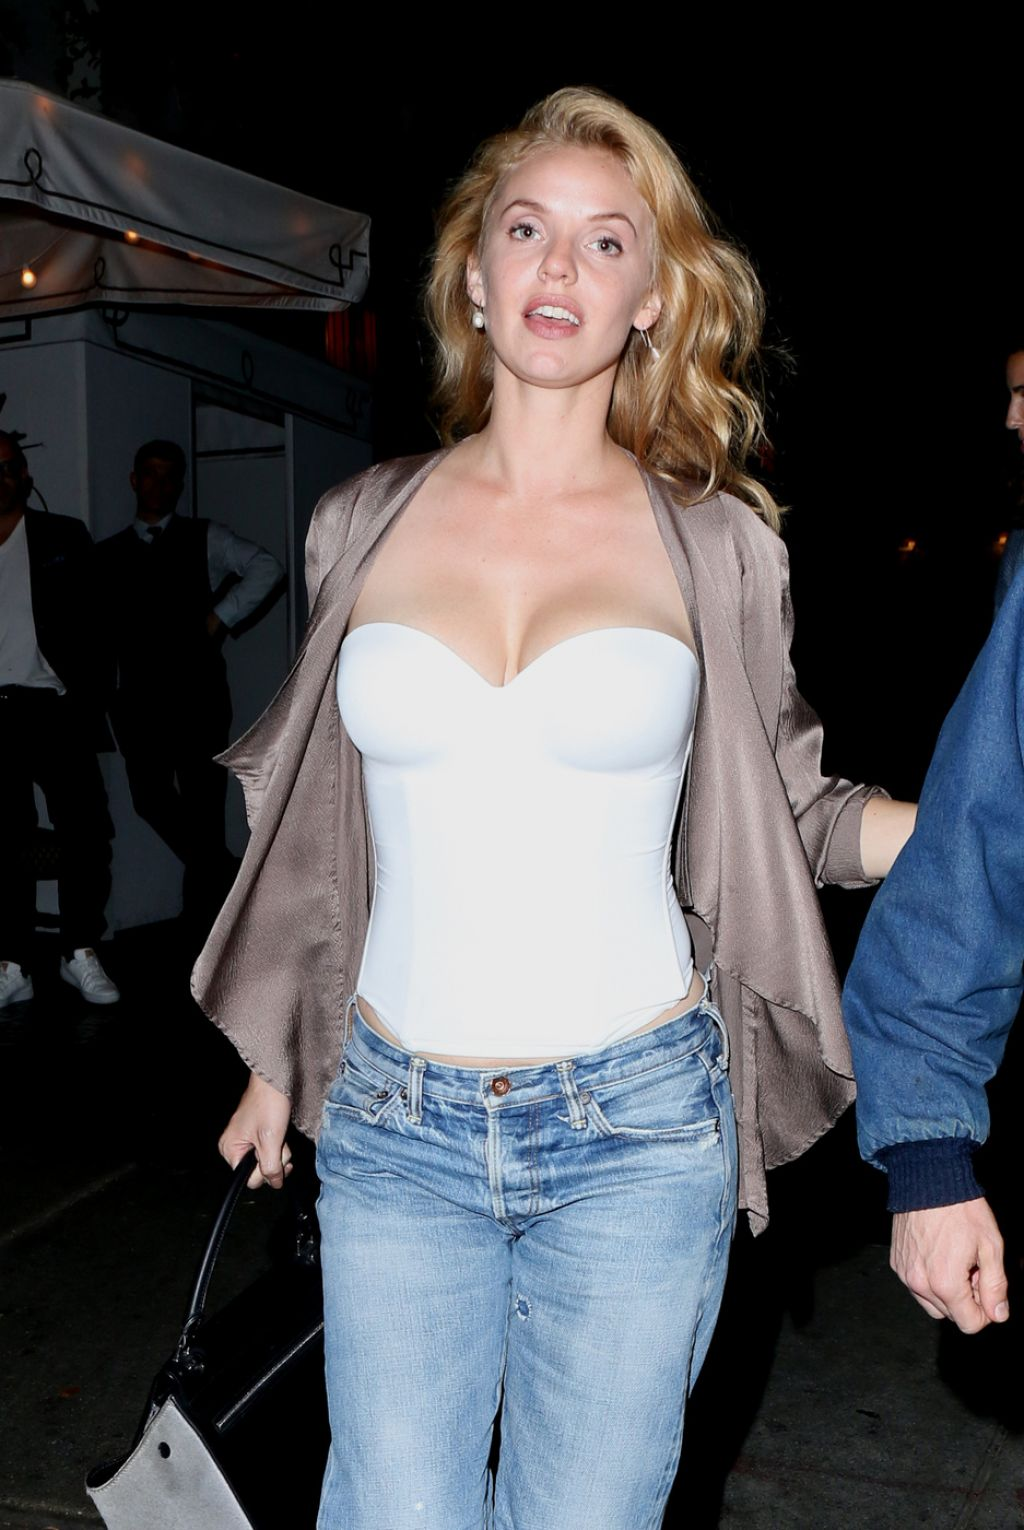 Kelli Garner Night Out Style At The Chateau Marmont In